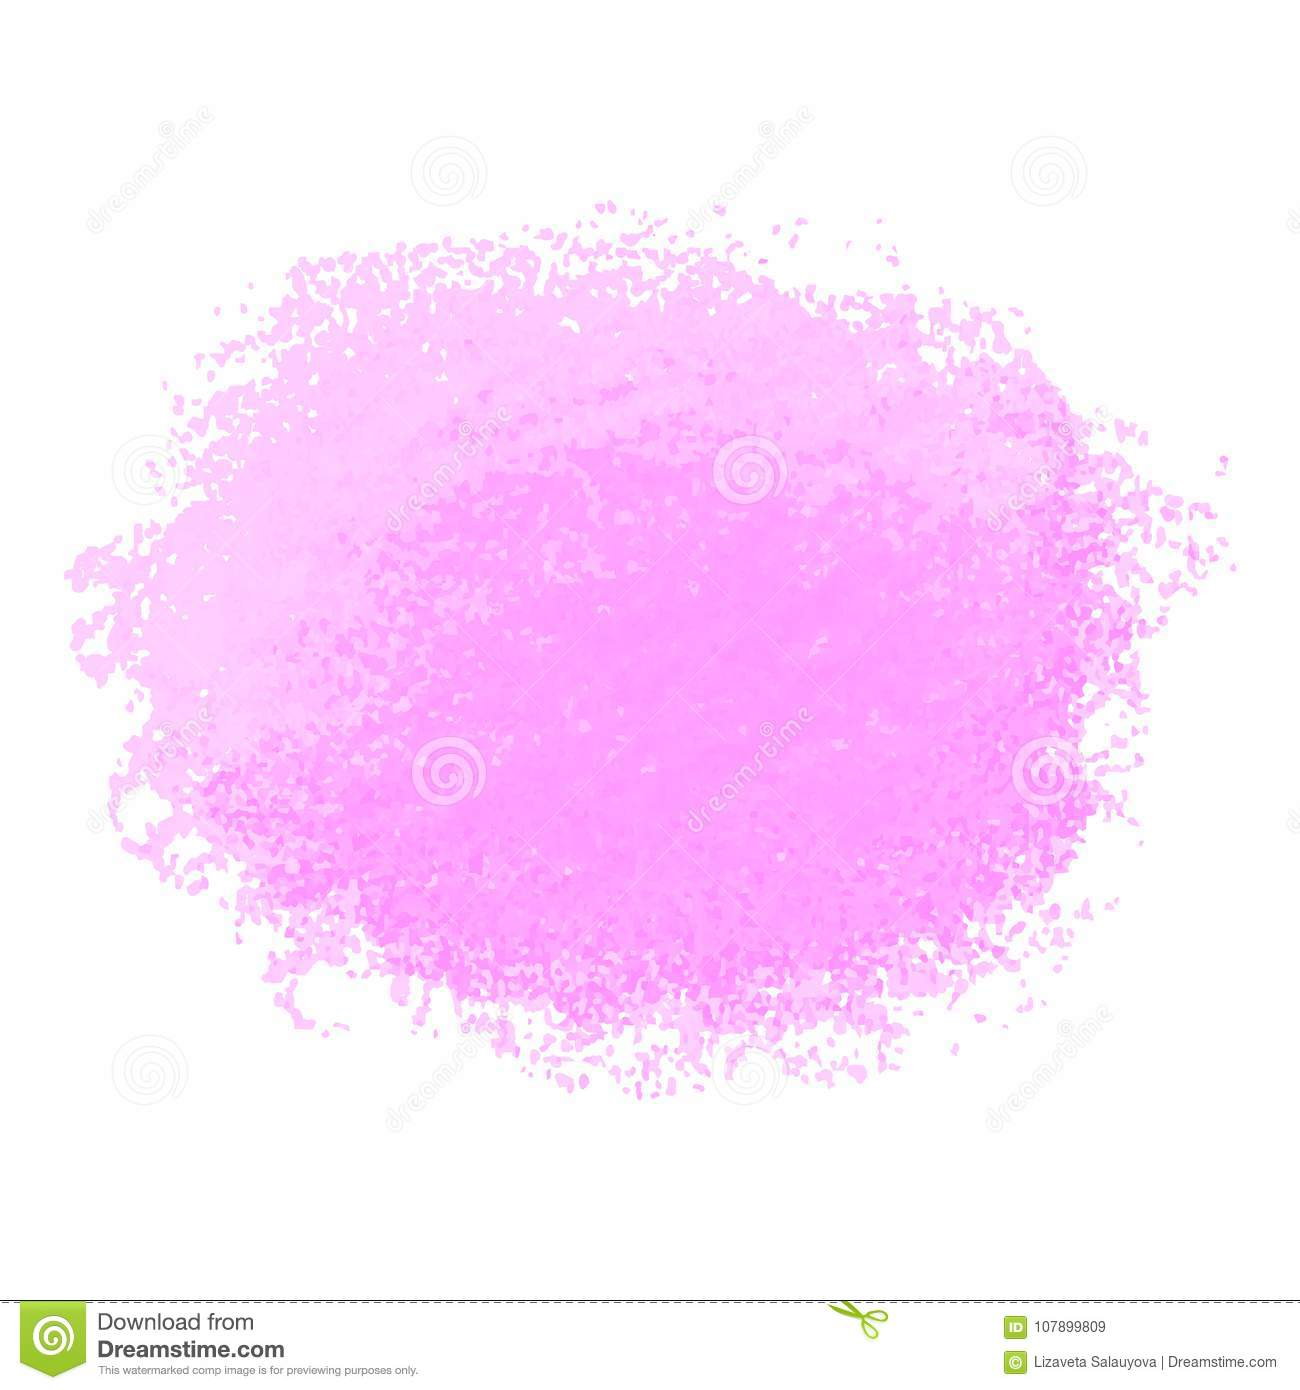 pink crayon scribble texture stain isolated on white background